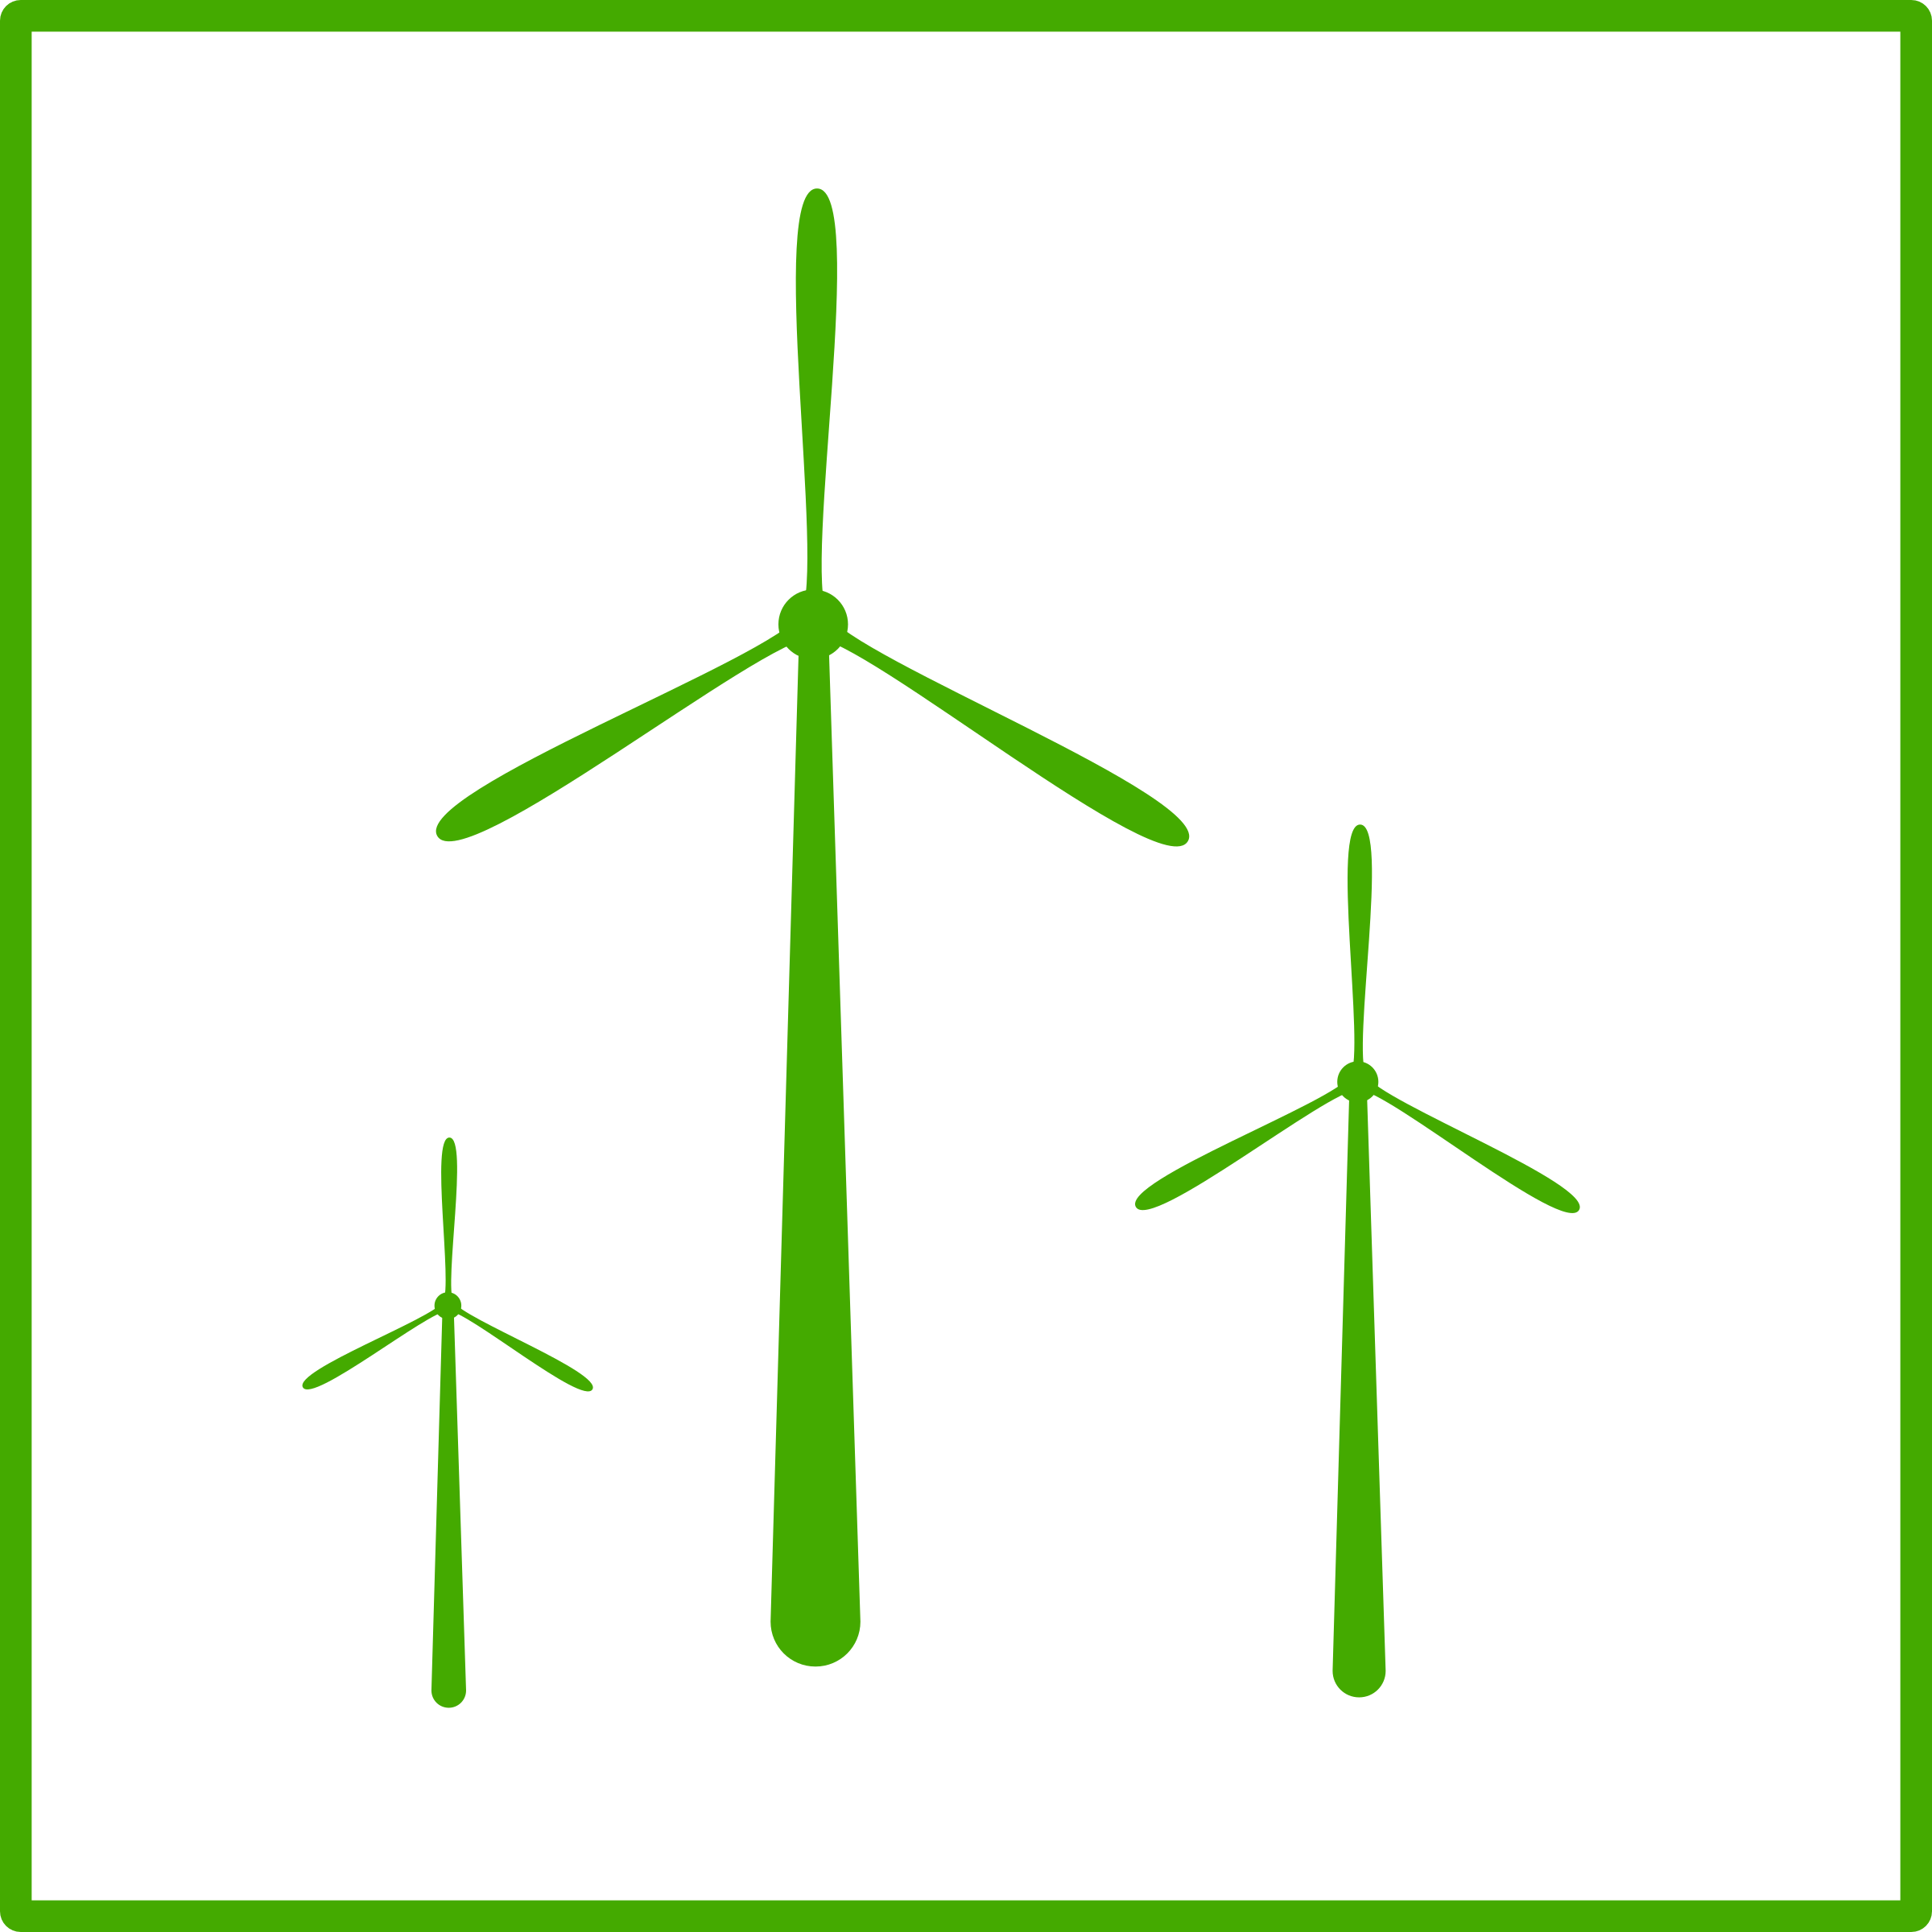 eco green windmill icon by dominiquechappard